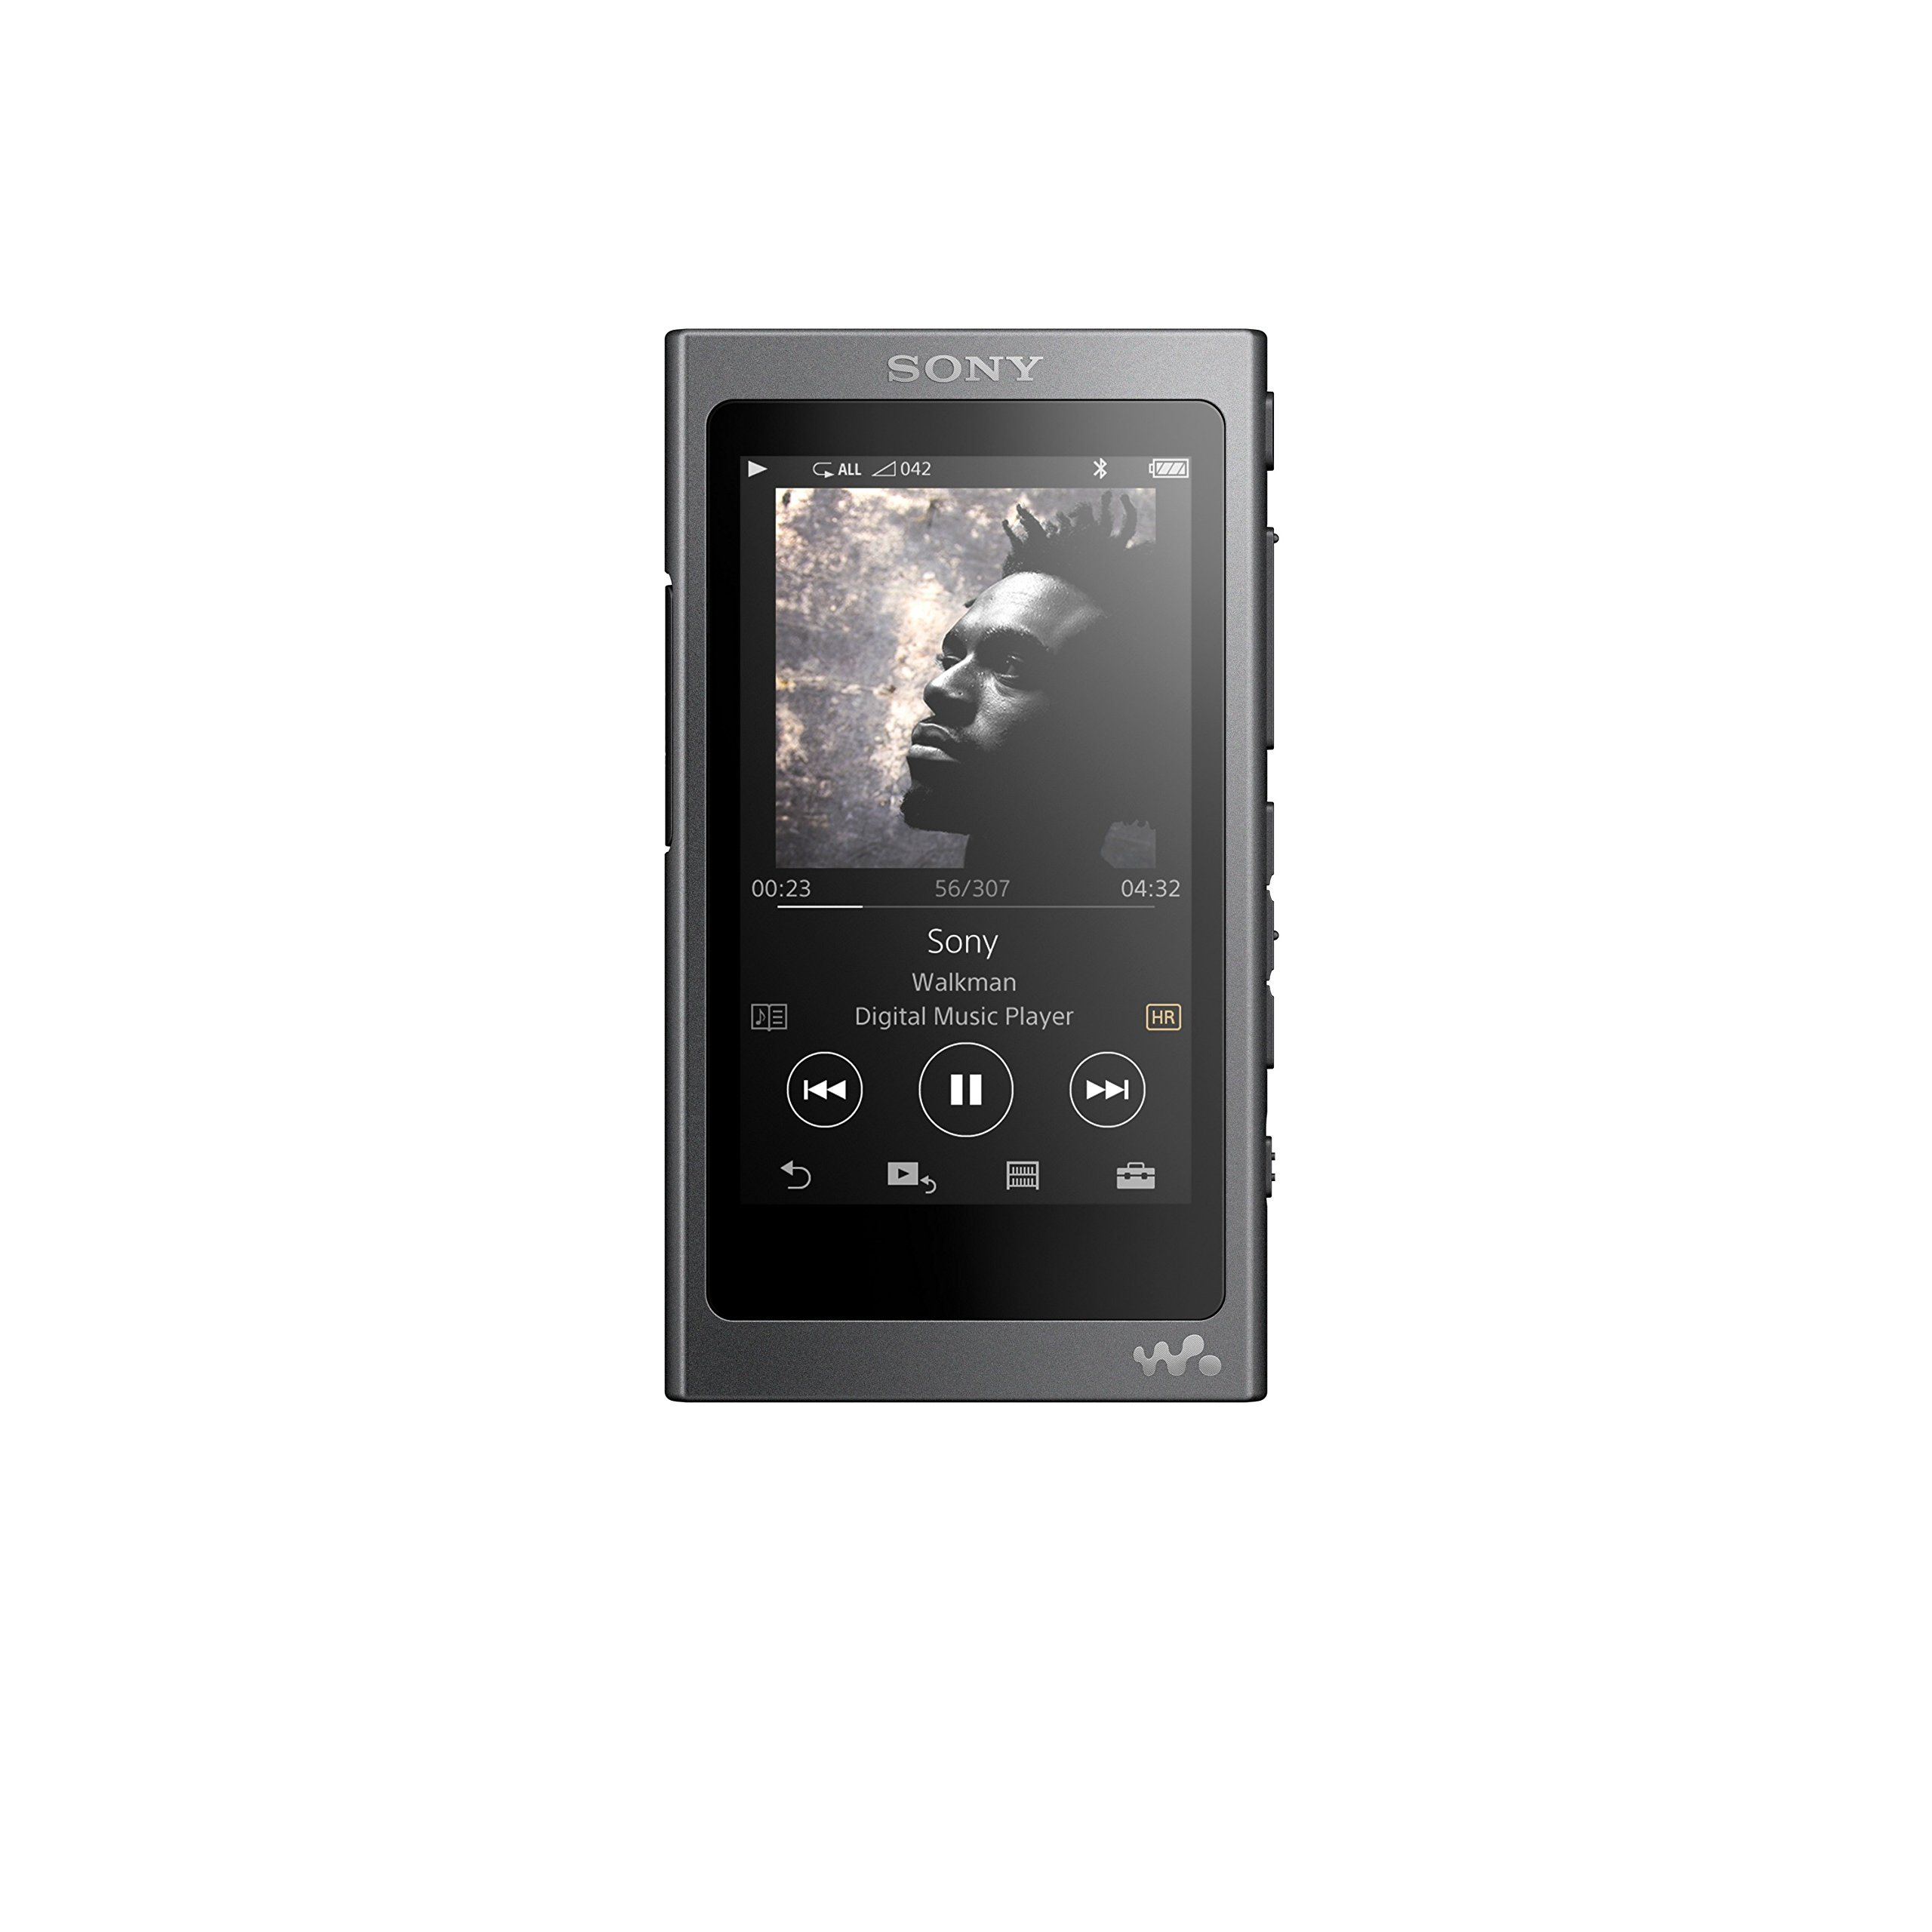 Sony NW-A35 16GB Walkman - Digital Music Player with Hi-Res Audio, Charcoal Black (2017 model) by Sony